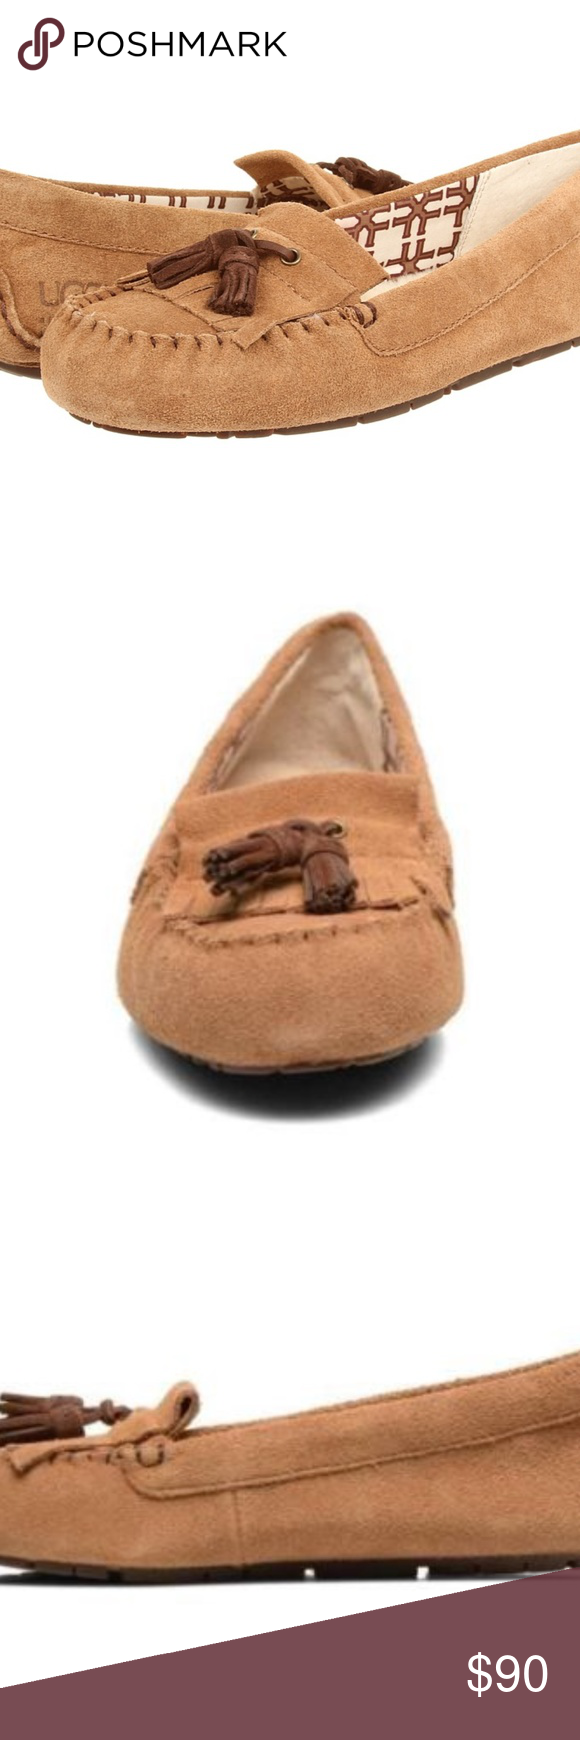 UGG LIZZY Chestnut Moccasins Loafers 11 New in box. May not contain all the original packing materials. Please know your size in the brand/style.   If purchased by 2:00 PM Central Time M-F, will ship same day!!   #1118 UGG Shoes Moccasins